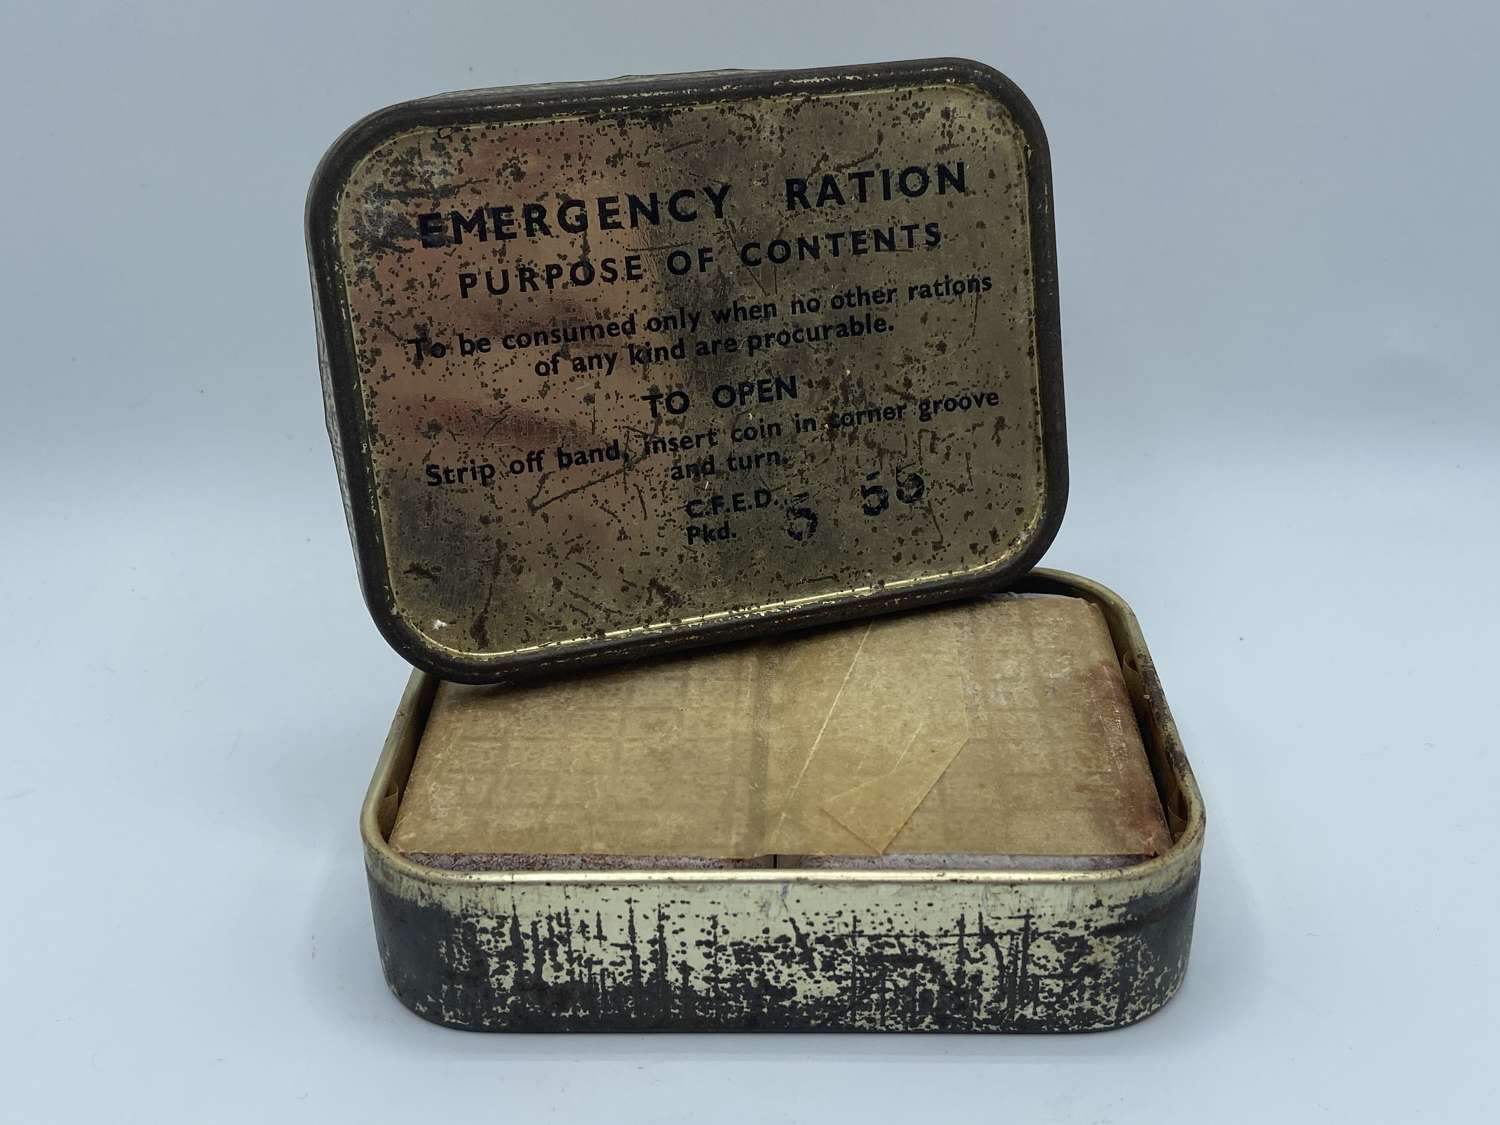 1955 Dated British Army Emergency Ration & Contents Cyprus Emergency